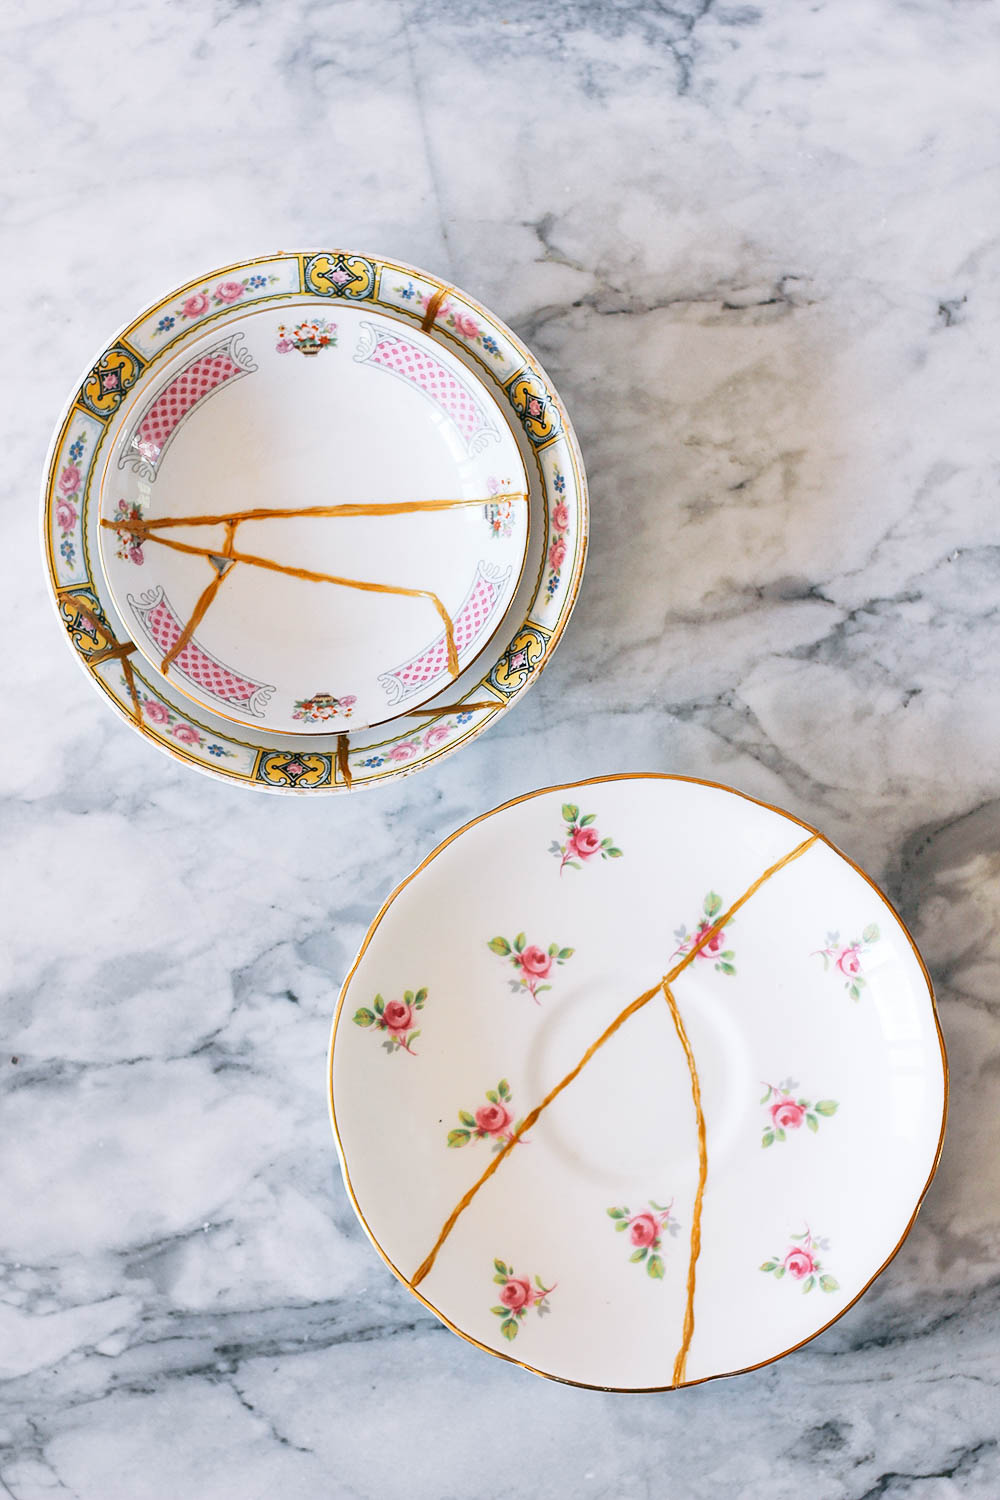 Inspired by the traditional Japanese method of repairing broken dishes with gold, these kintusi ring dishes are a beautiful way to organize your jewelry. Get the full tutorial at HomemadeBanana.com #diy #ringdish #kintsugi #gold